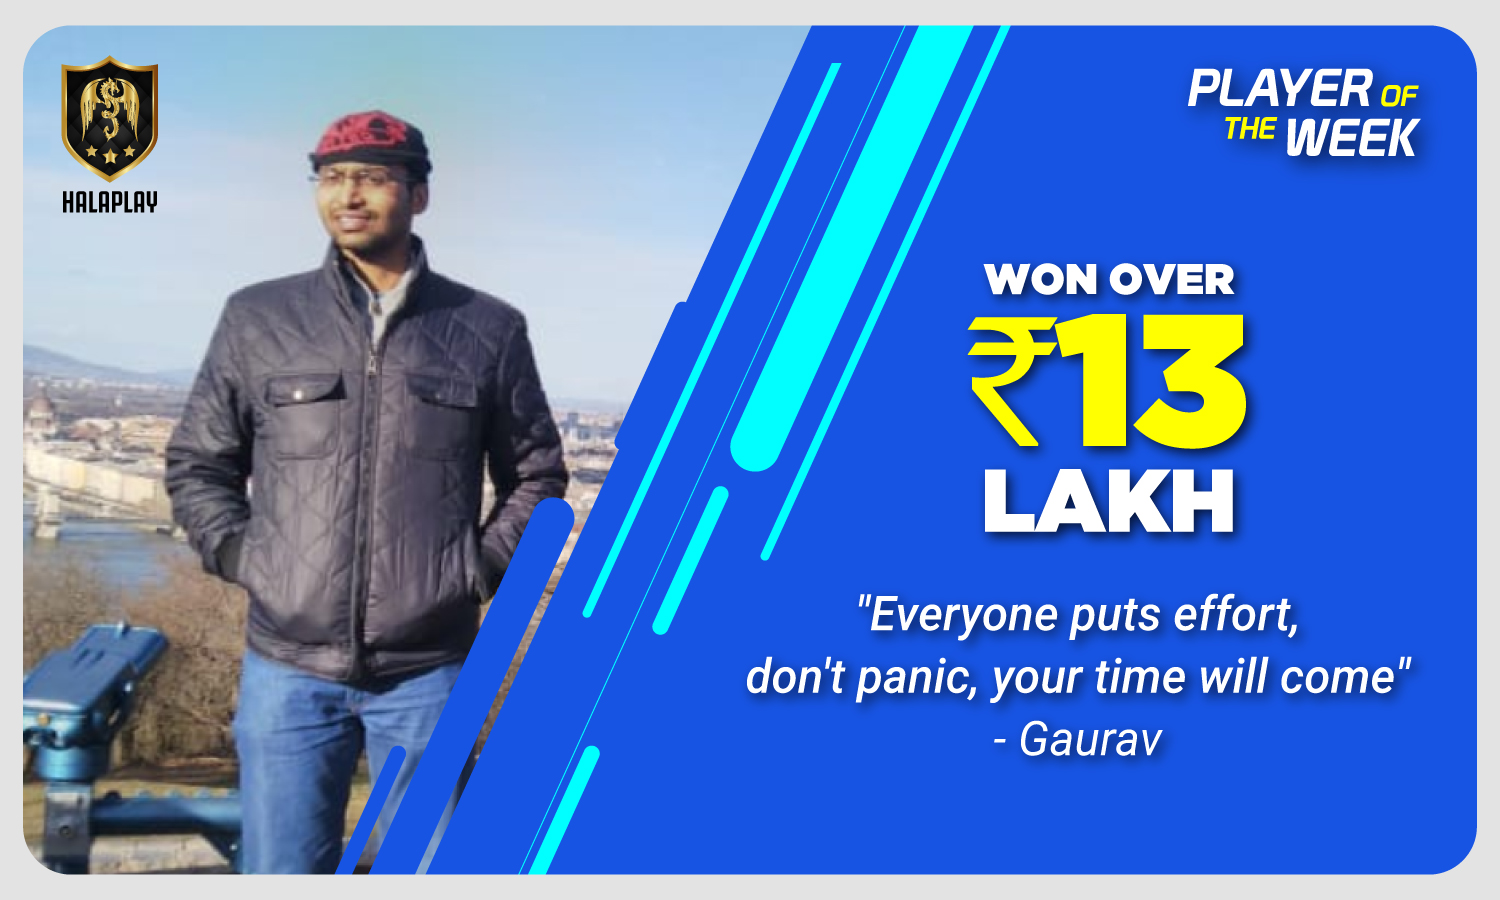 I've won over ₹13 Lakh in an year on HalaPlay